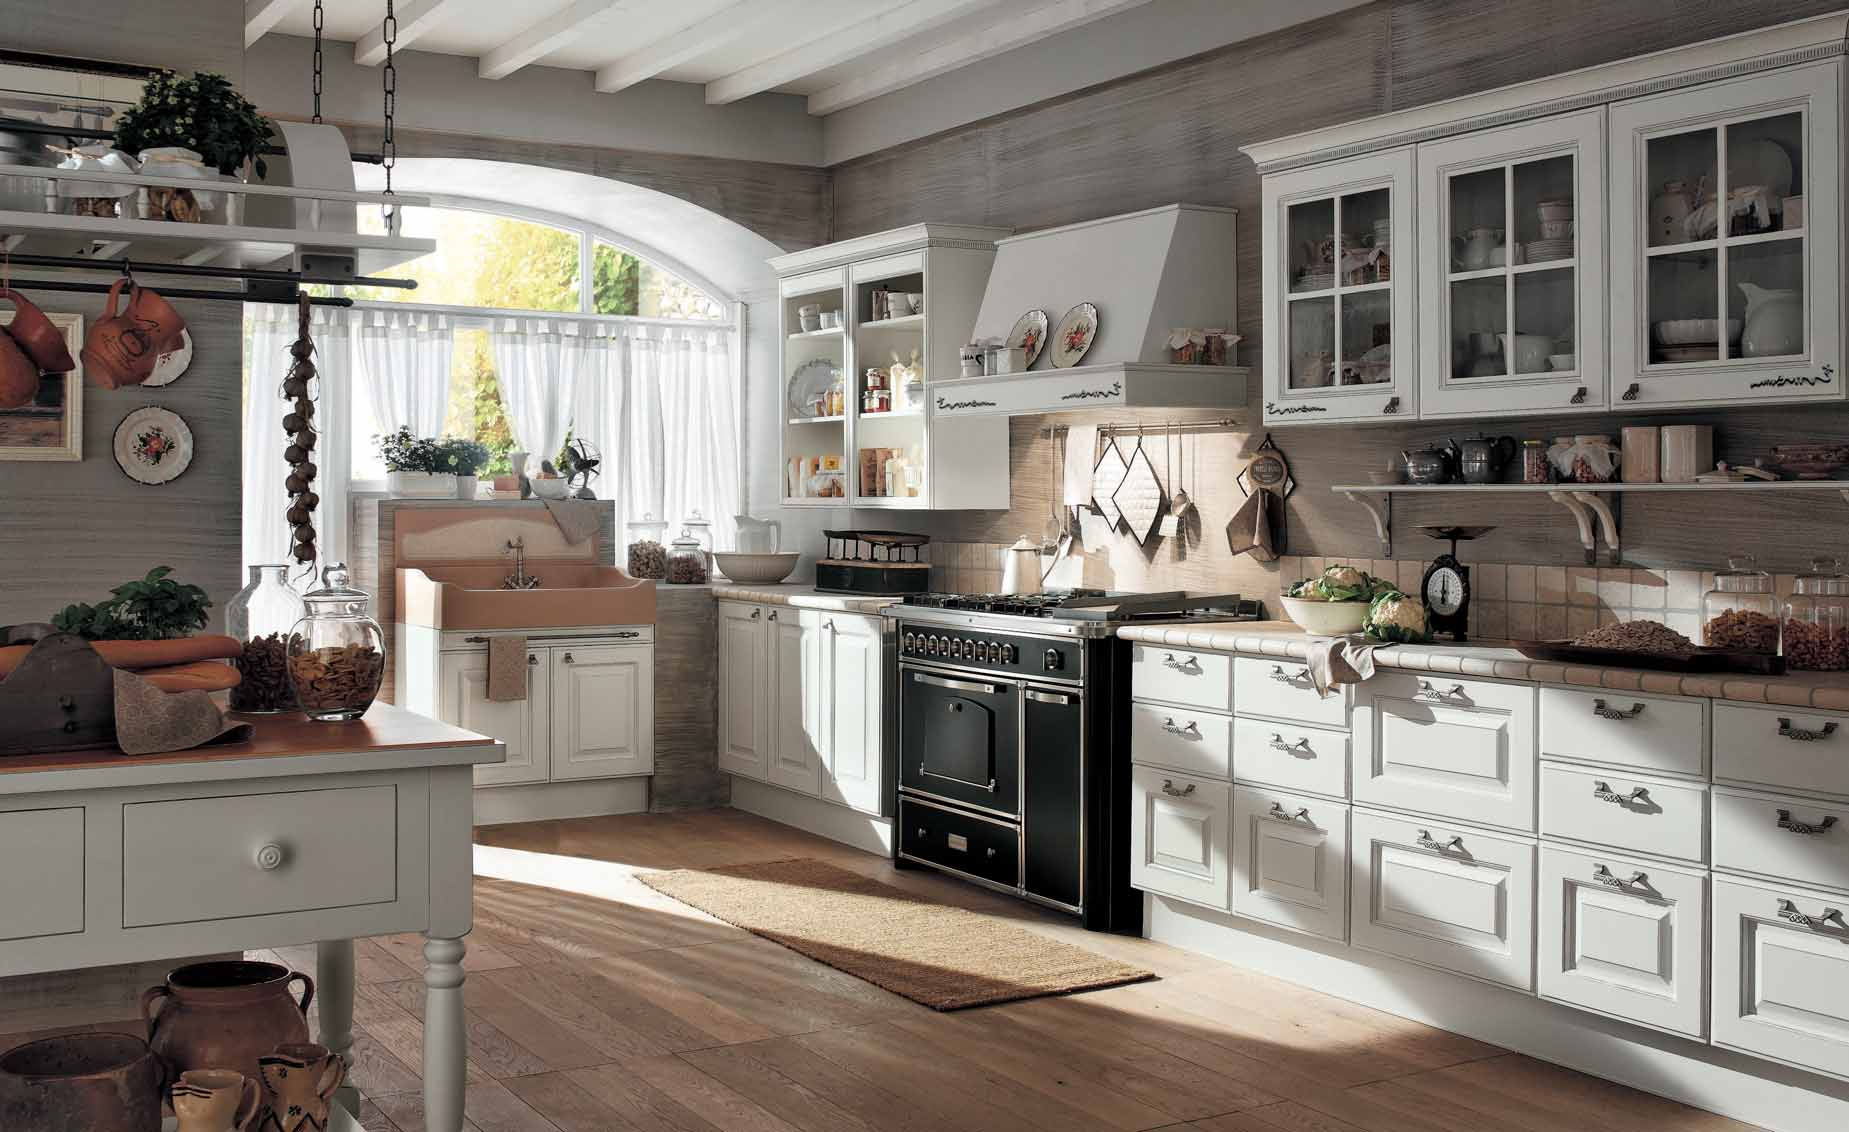 Magnificent Classic Kitchen Interior Design 1849 x 1132 · 149 kB · jpeg